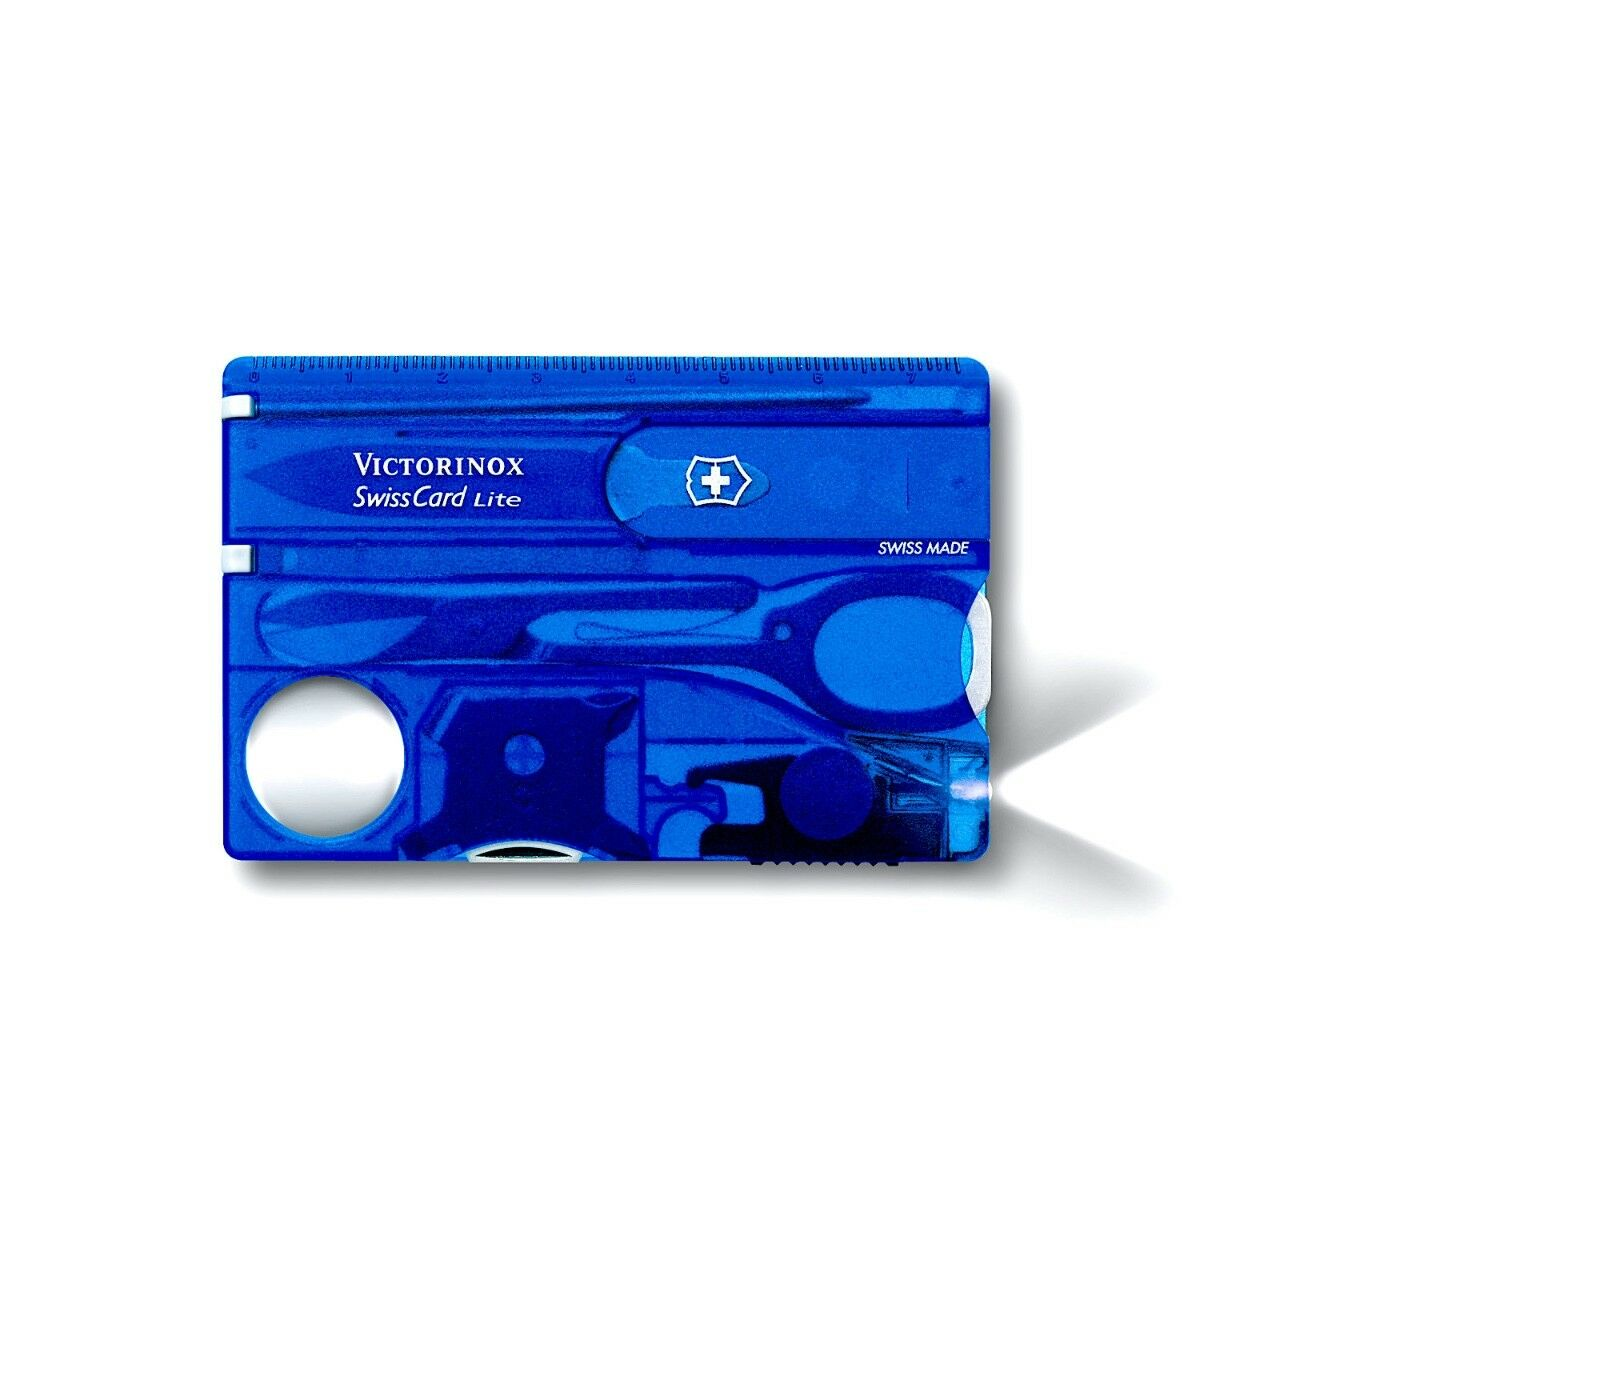 VICTORINOX SwissCard Lite   SAPHIRE blueE   White  LED Light - Made in SWITZERLAND  outlet on sale